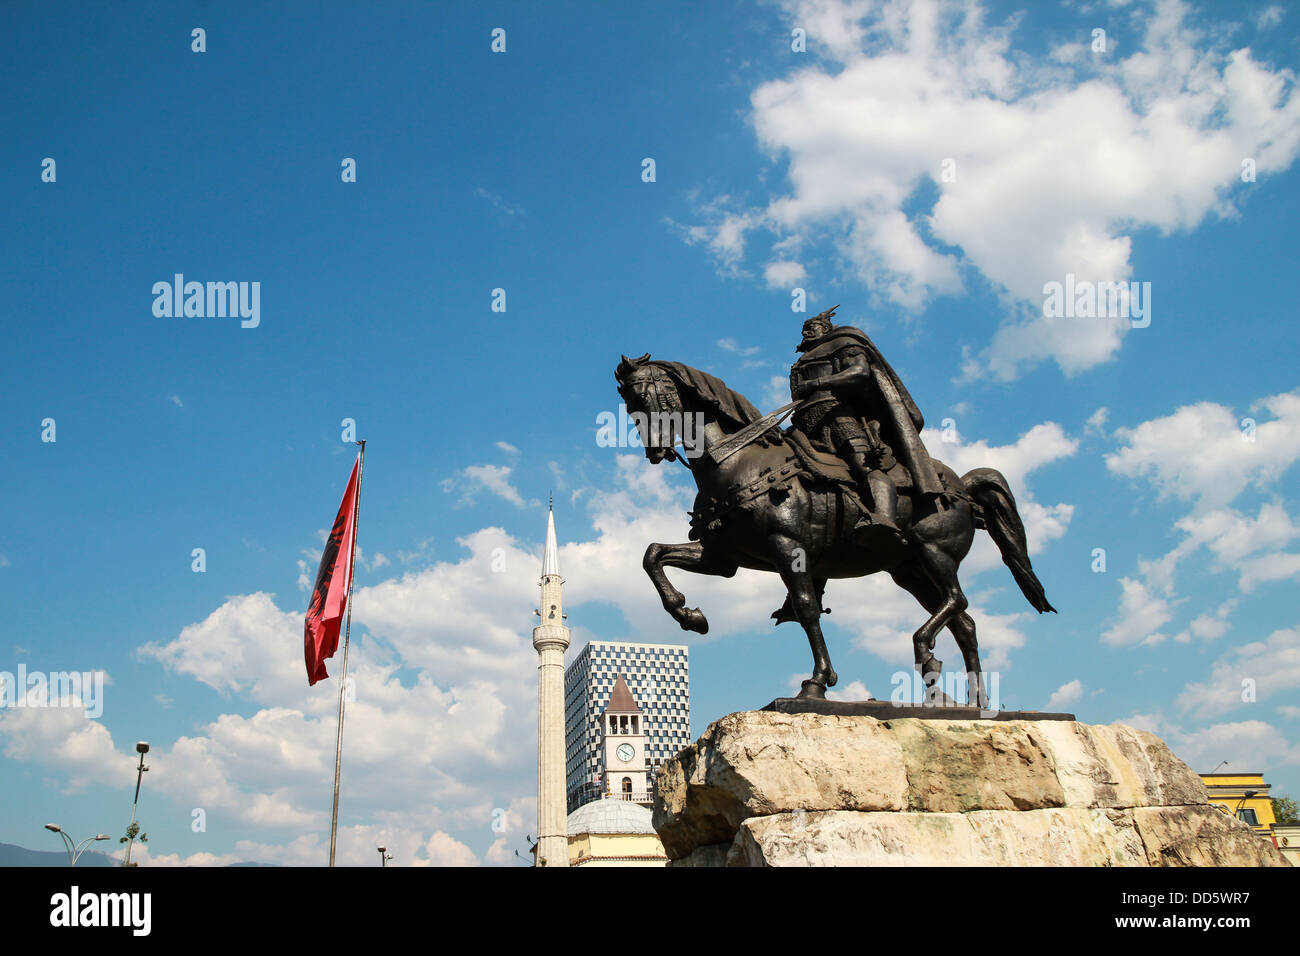 Statue Albanian national hero George Kastrioti Skanderbeg on his horse, in the main square of Tirana, the capital - Stock Image